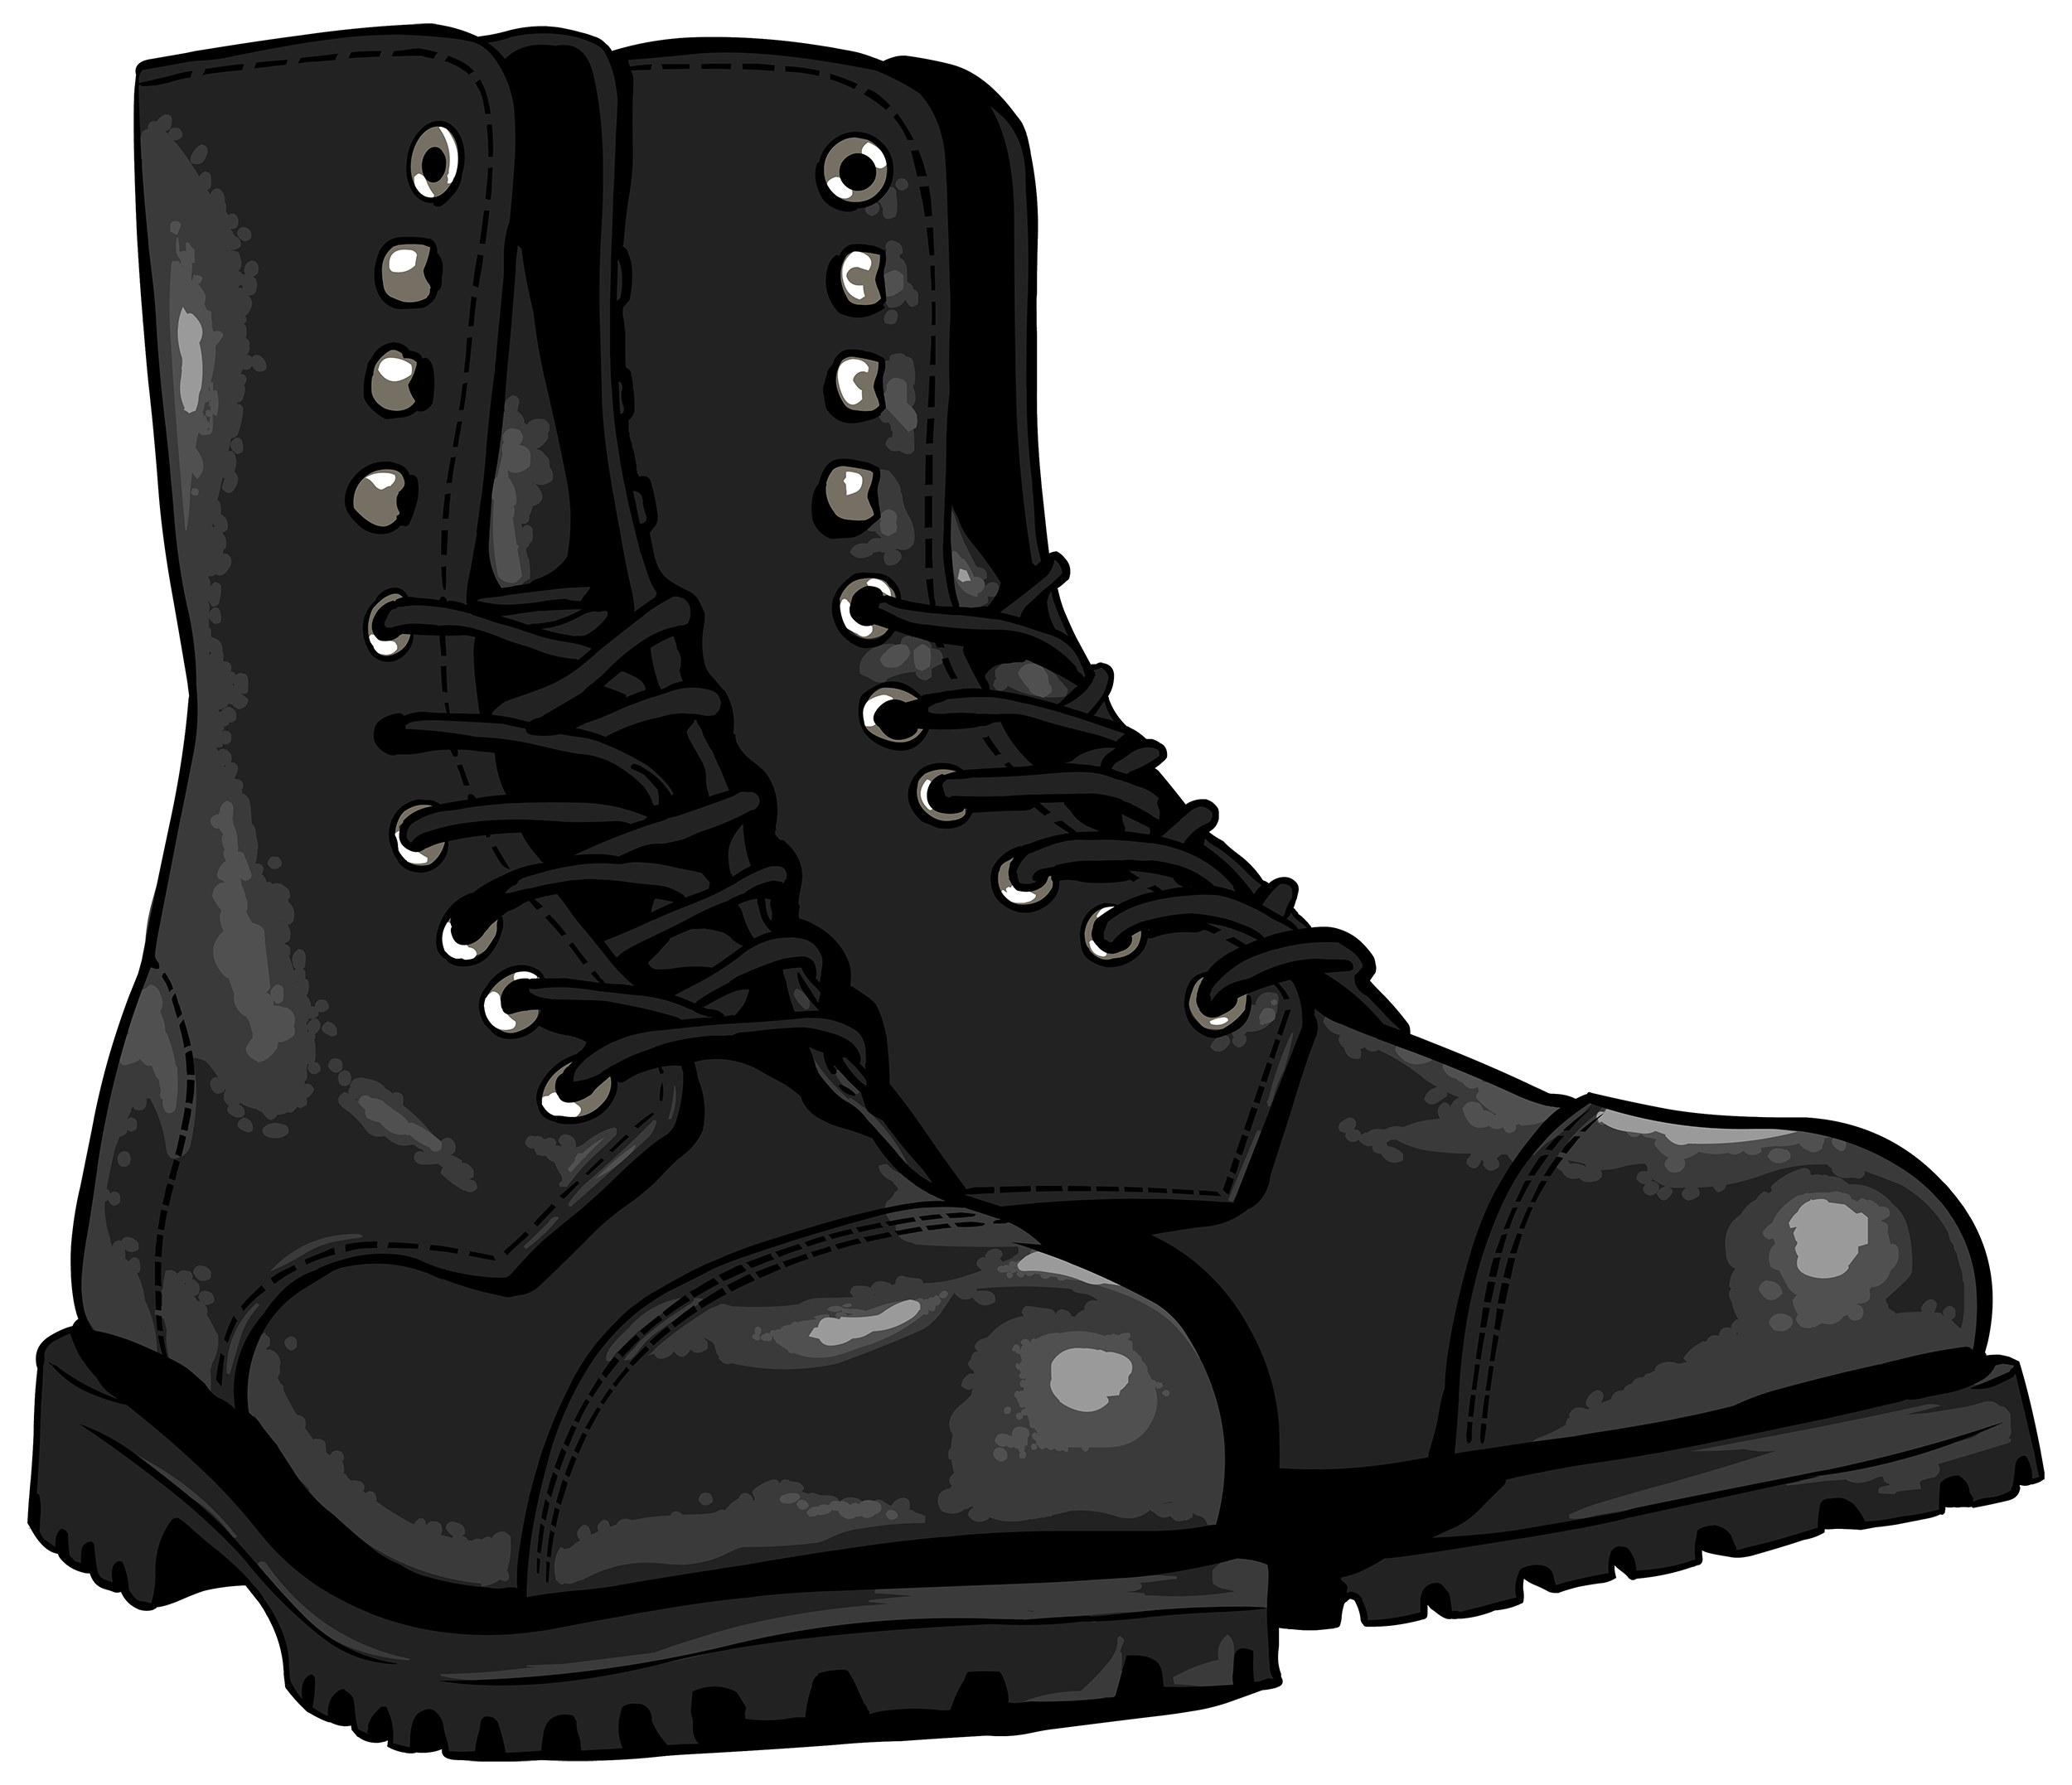 Timbs png clipart. Black boots image best